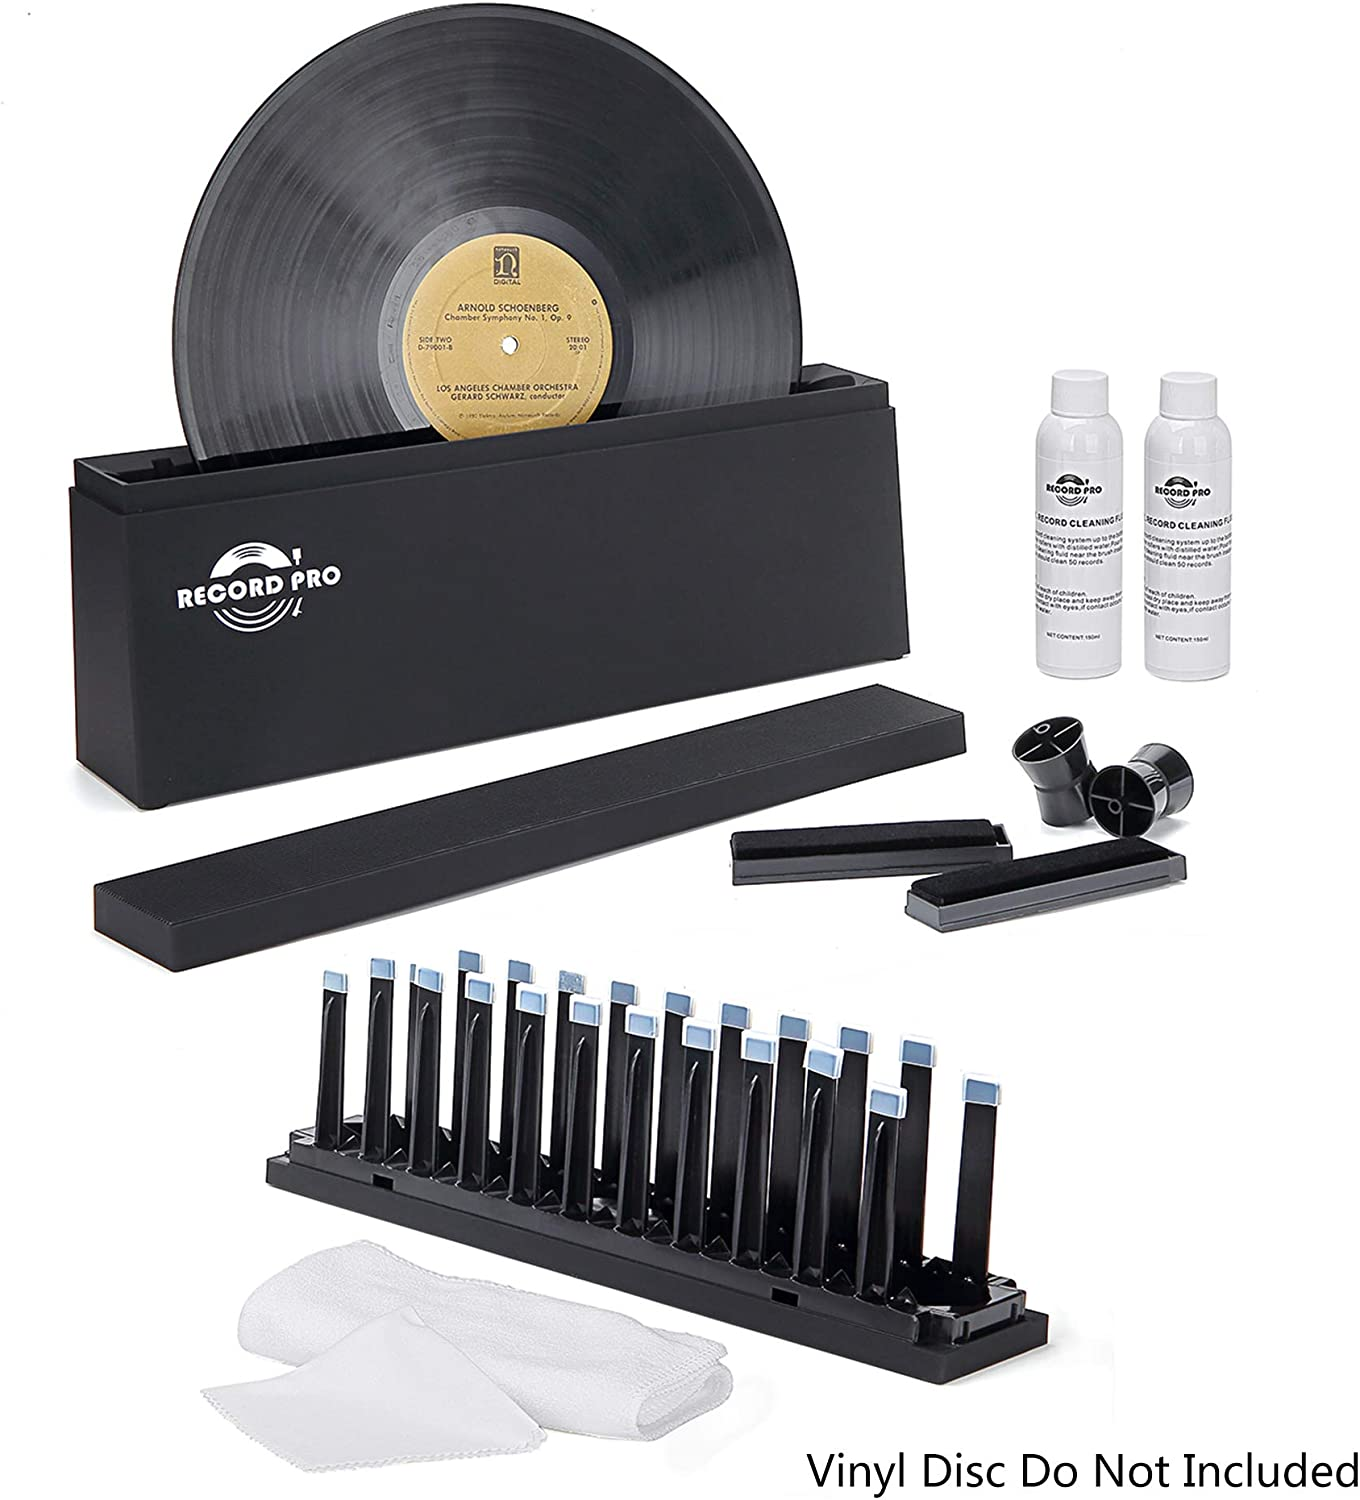 "Vinyl Record Cleaner Spin Kit System, Cleaning Fluid, Drying Rack, Brushes, and Microfiber Cloths for 7"", 10"", 12"" Vinyl Disc"